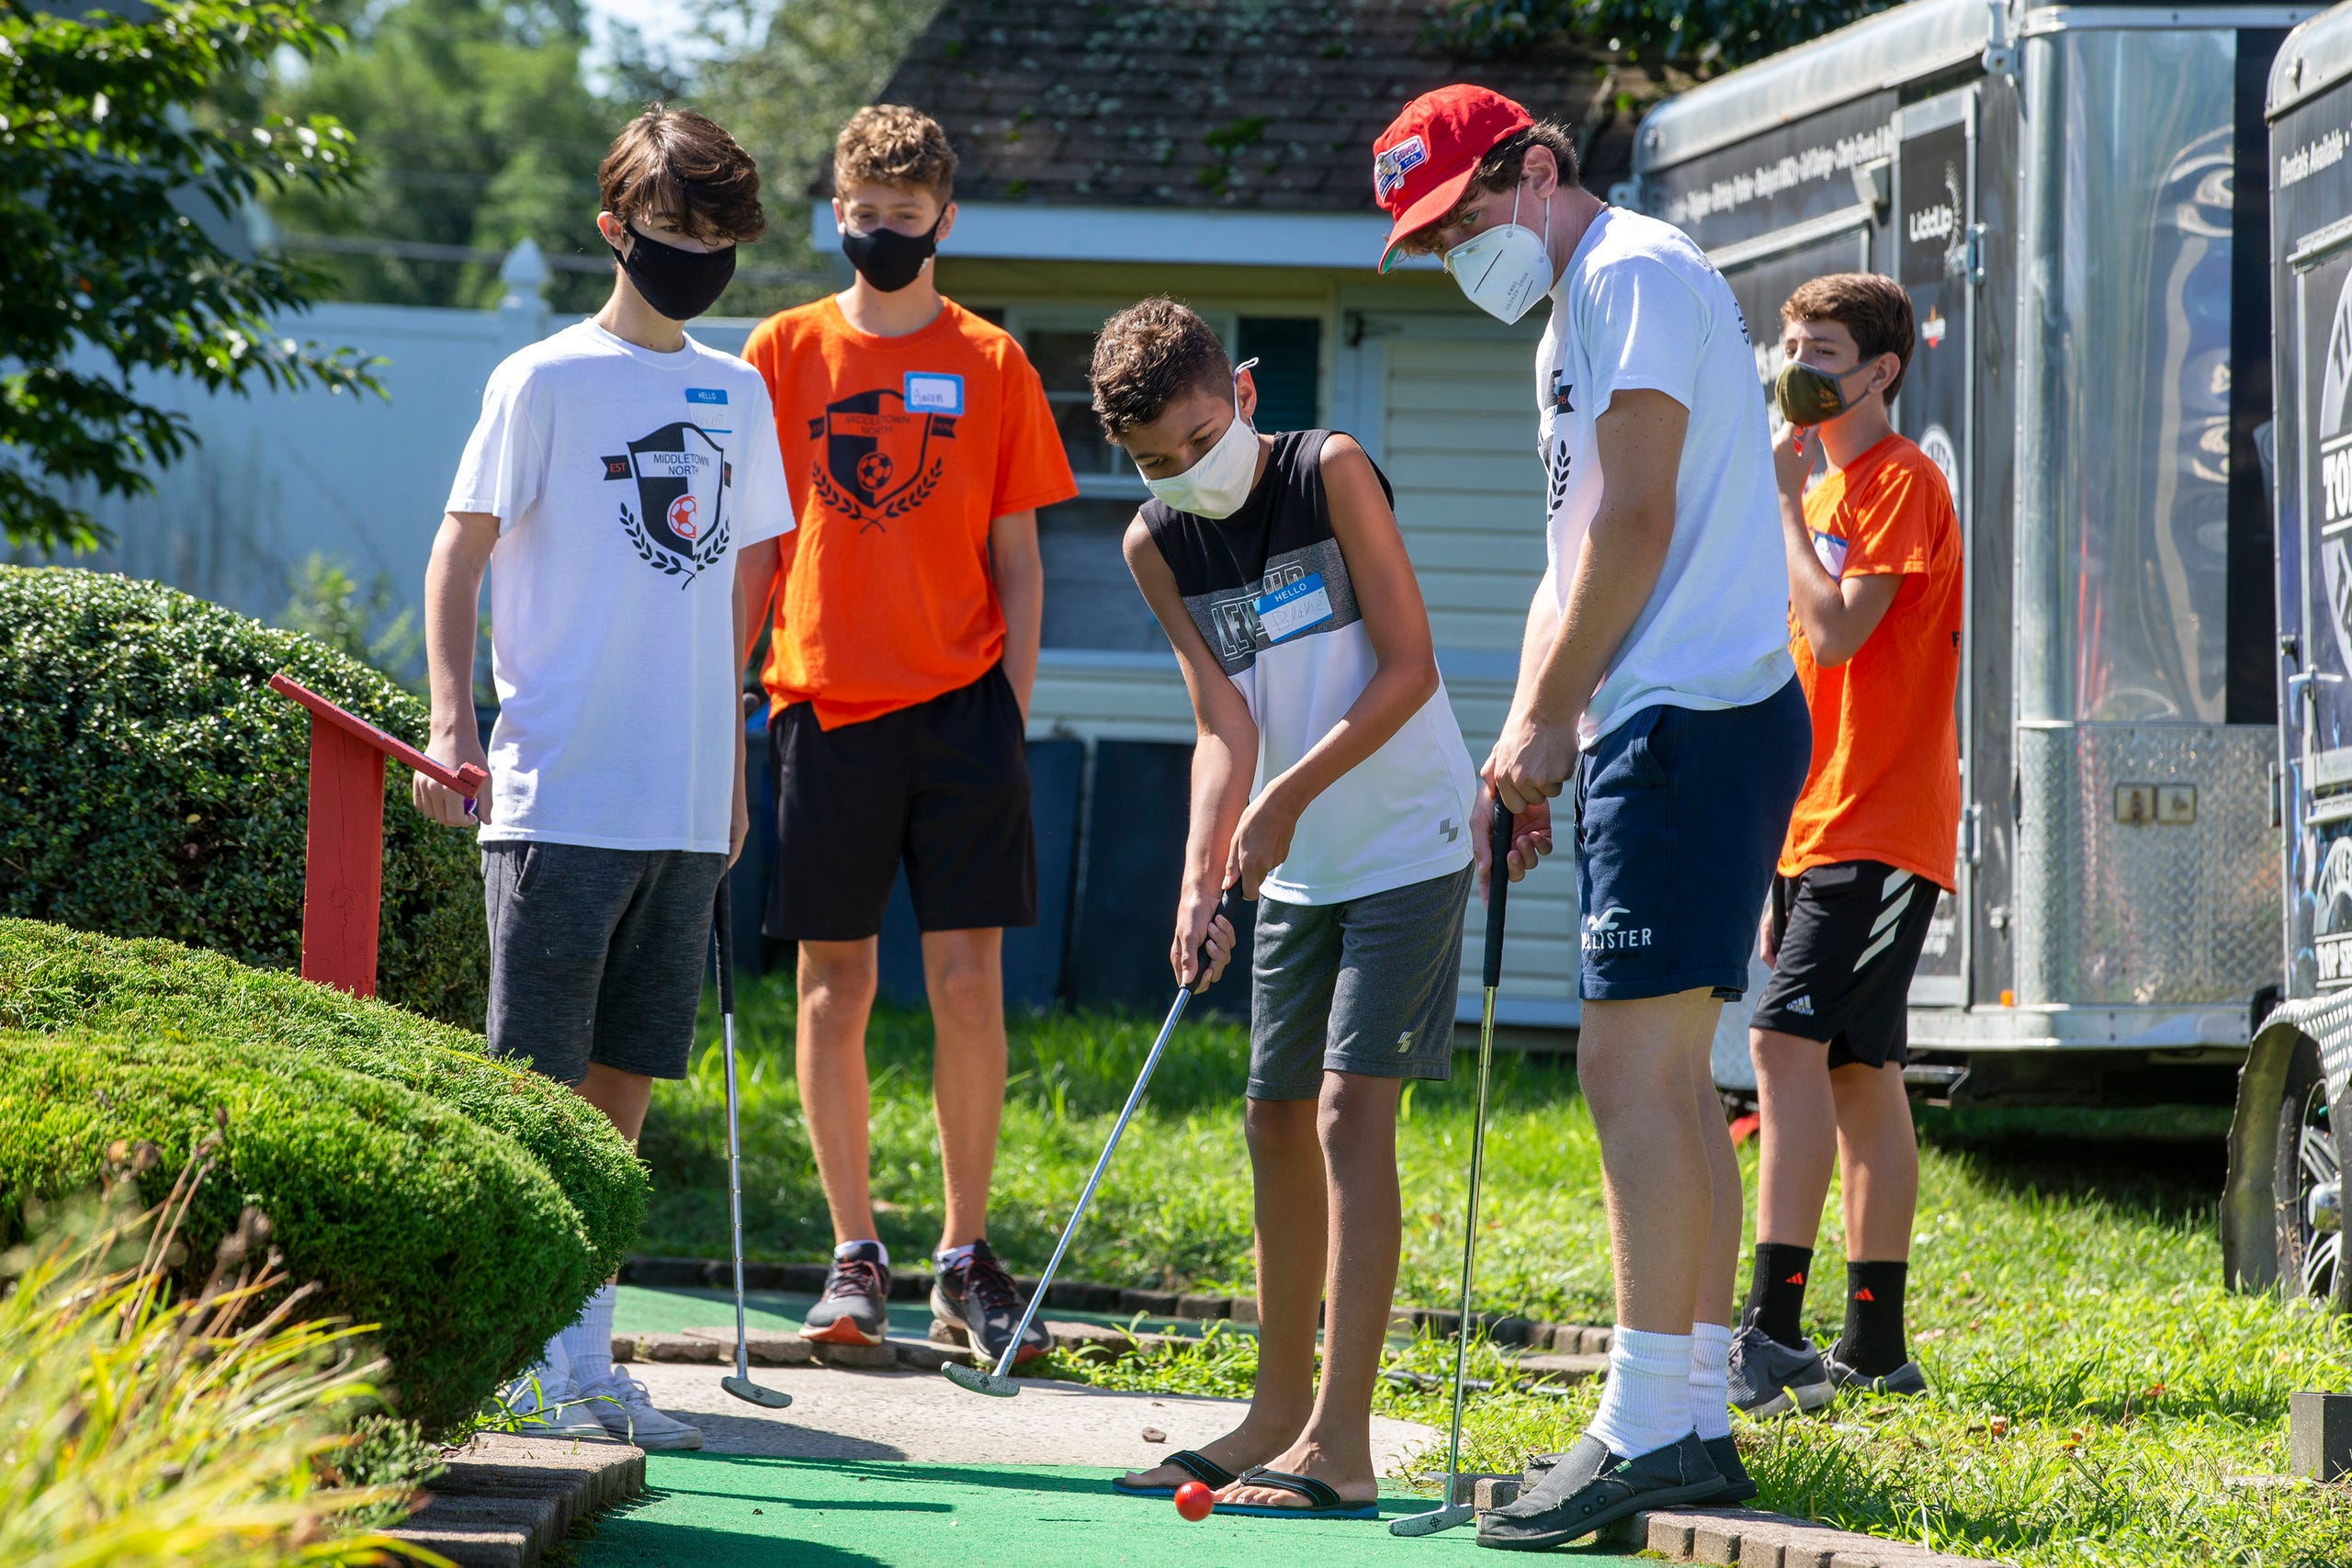 (right in hat) Christian Sanford, 15 of Middletown and jv soccer player helps (center) Blake Illingworth, 13, of Middletown with his swing as members of the Middletown North boys soccer team play mini-golf with a group of special-needs kids as part of Friends Connect Foundation, a nonprofit run by Sophia Ziajski, 19, of Middletown, atTST BBQ & Mini Golf in Middletown, NJ Tuesday, August 18, 2020.